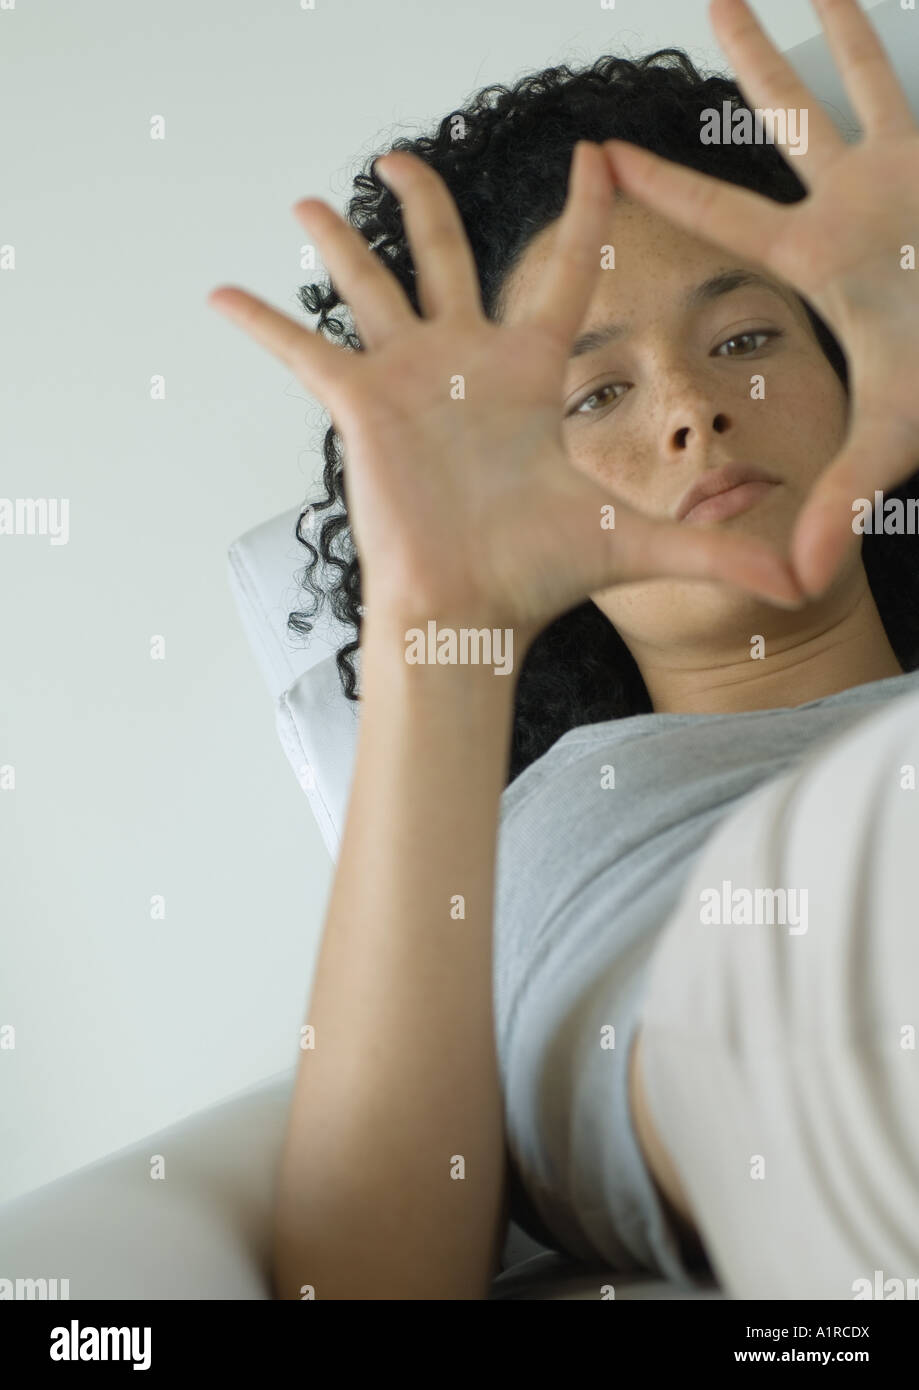 Woman lying down, making frame with hands - Stock Image